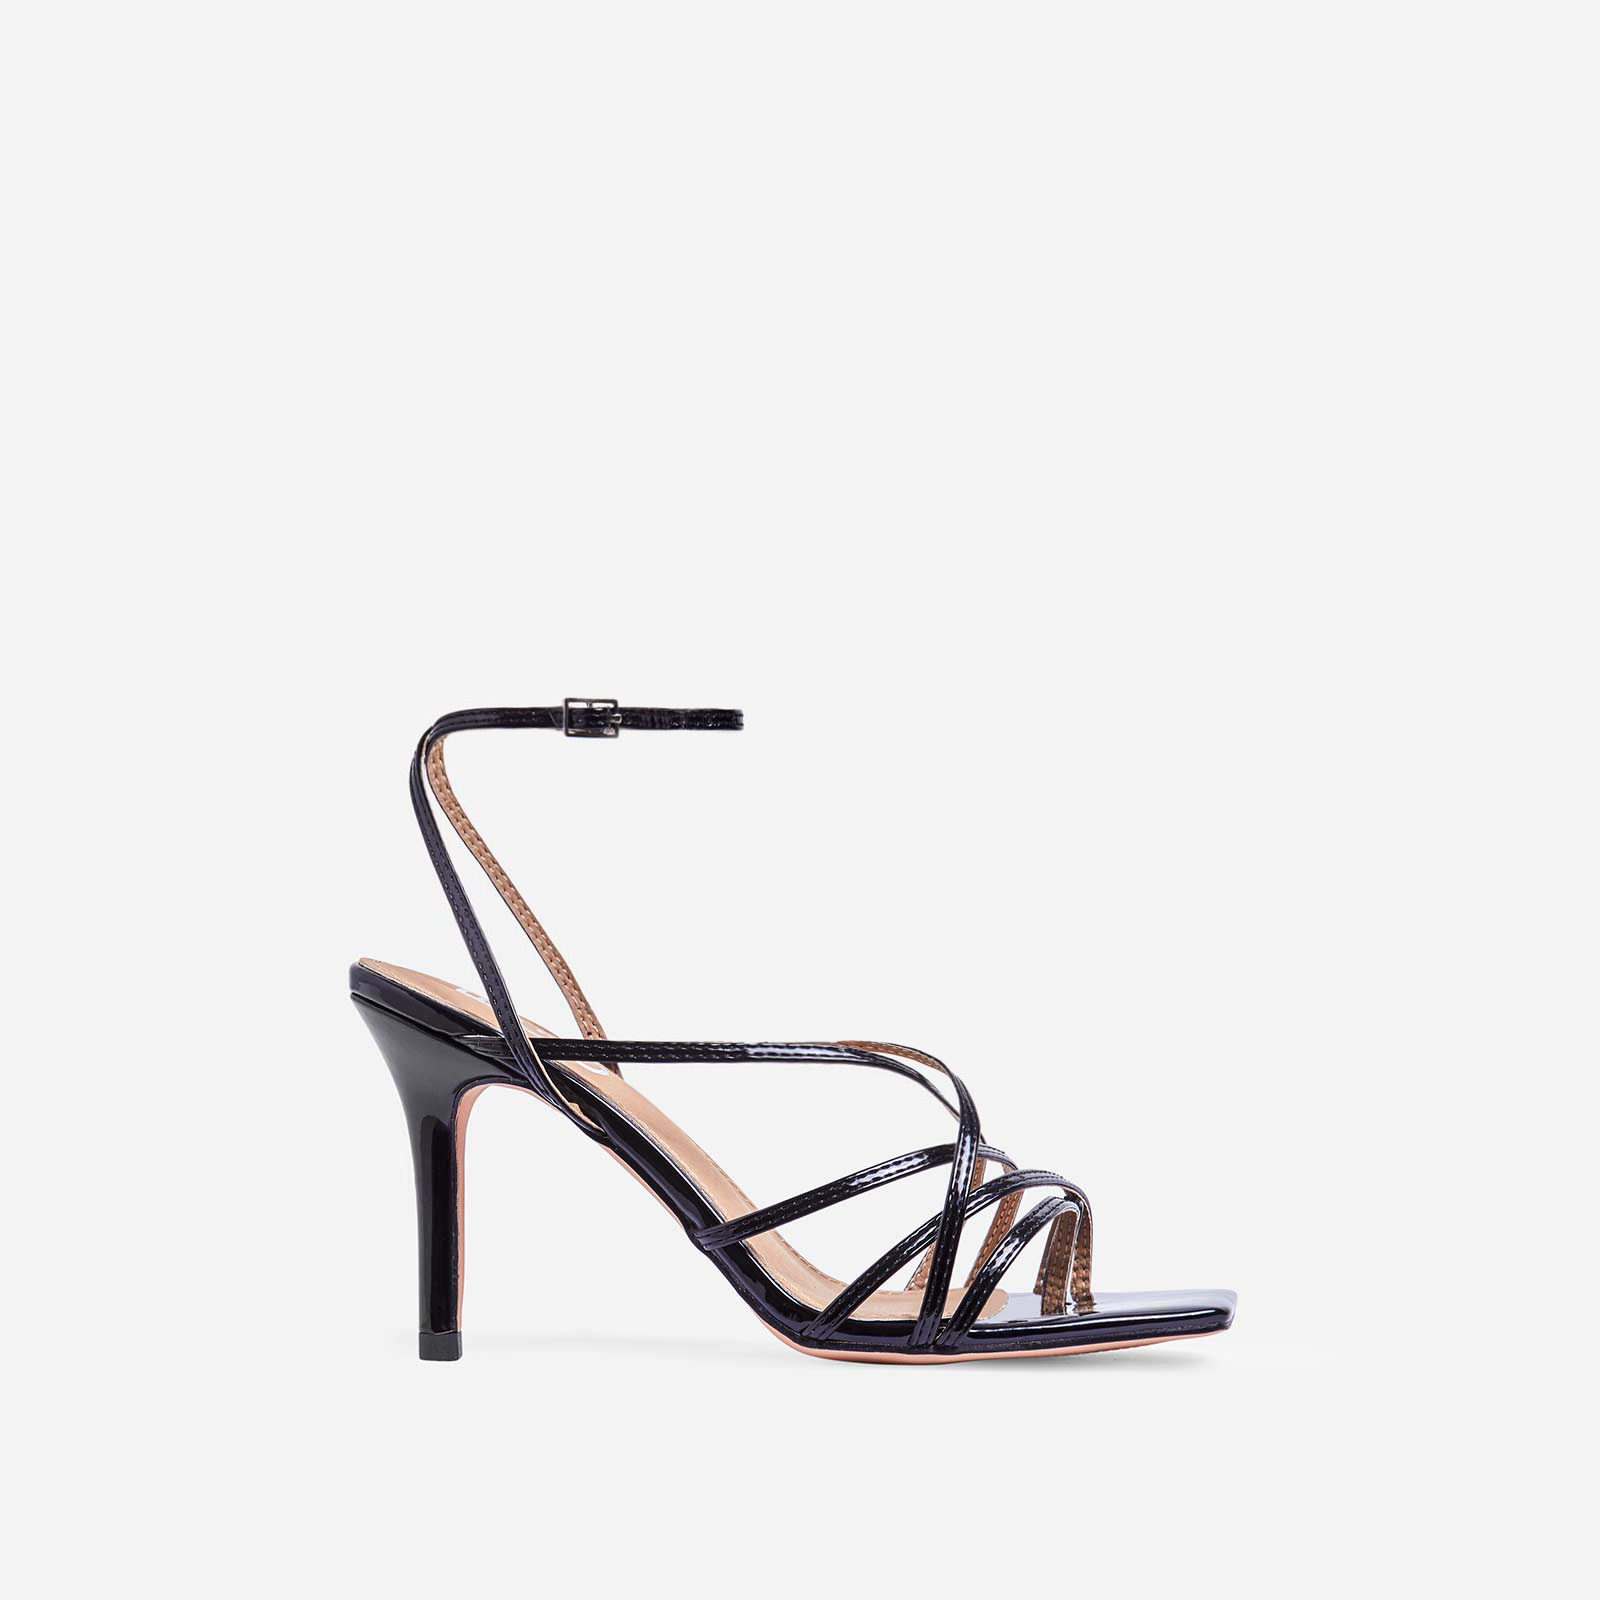 Shade Square Toe Strappy Kitten Heel In Black Patent